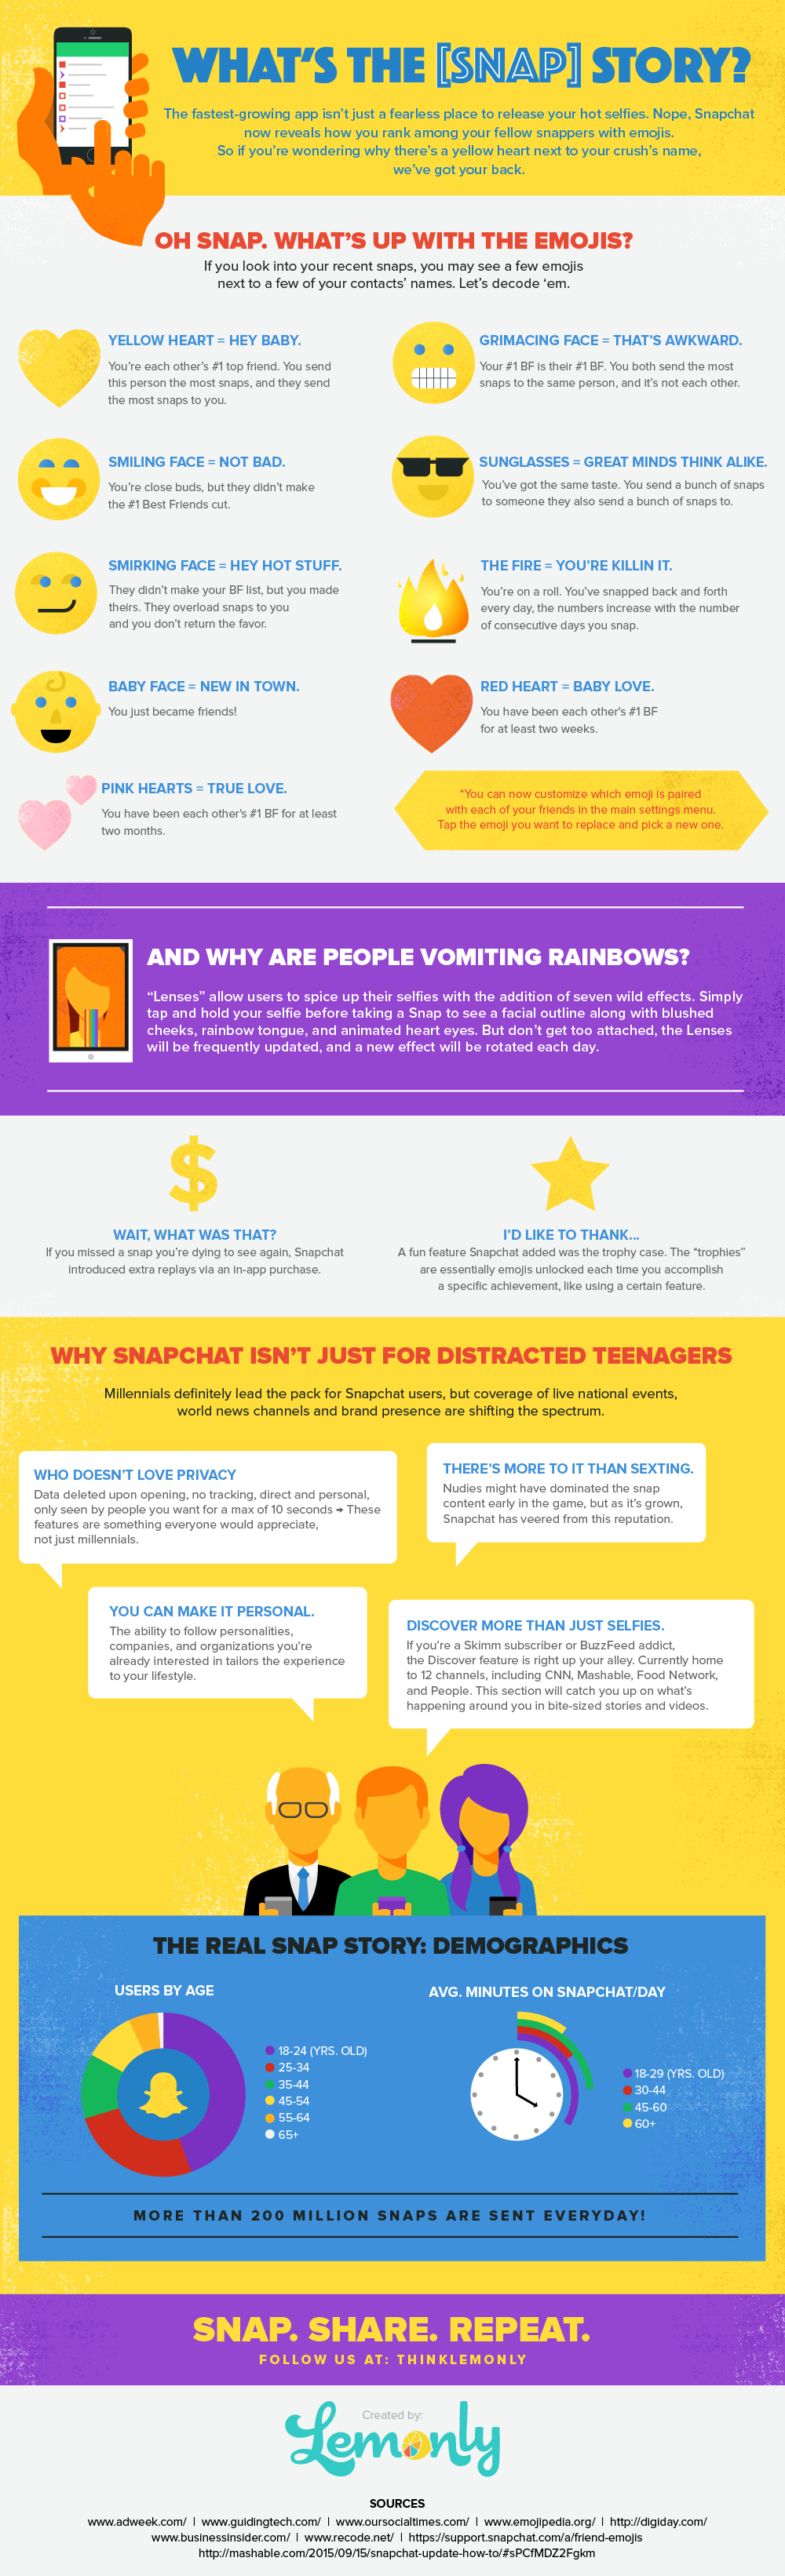 The 25 best snapchat emoji meanings ideas on pinterest emojis the 25 best snapchat emoji meanings ideas on pinterest emojis meanings emojis and their meanings and emoji quiz buycottarizona